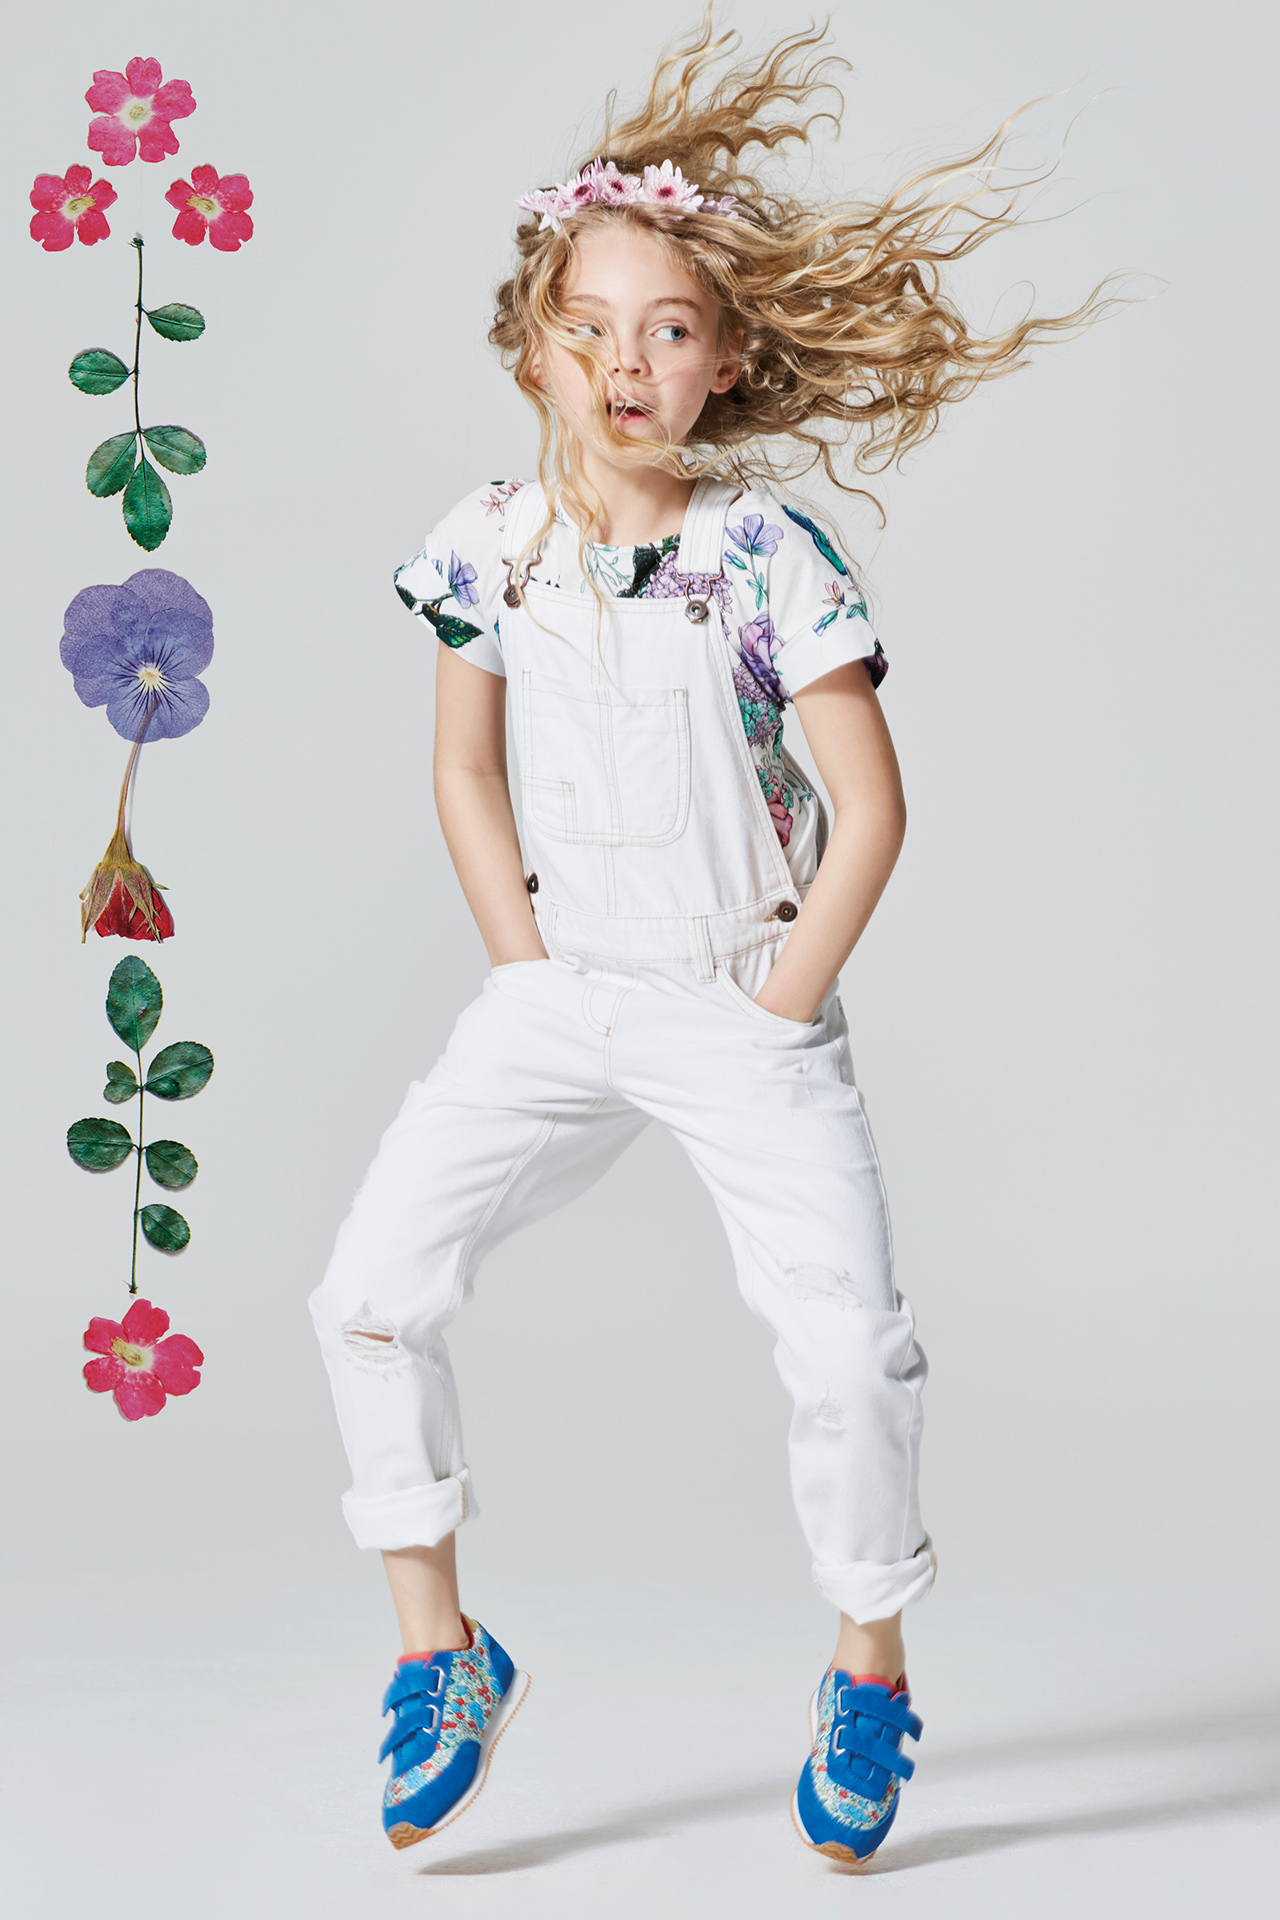 Floral kids fashion girl 2 Emma Tunbridge